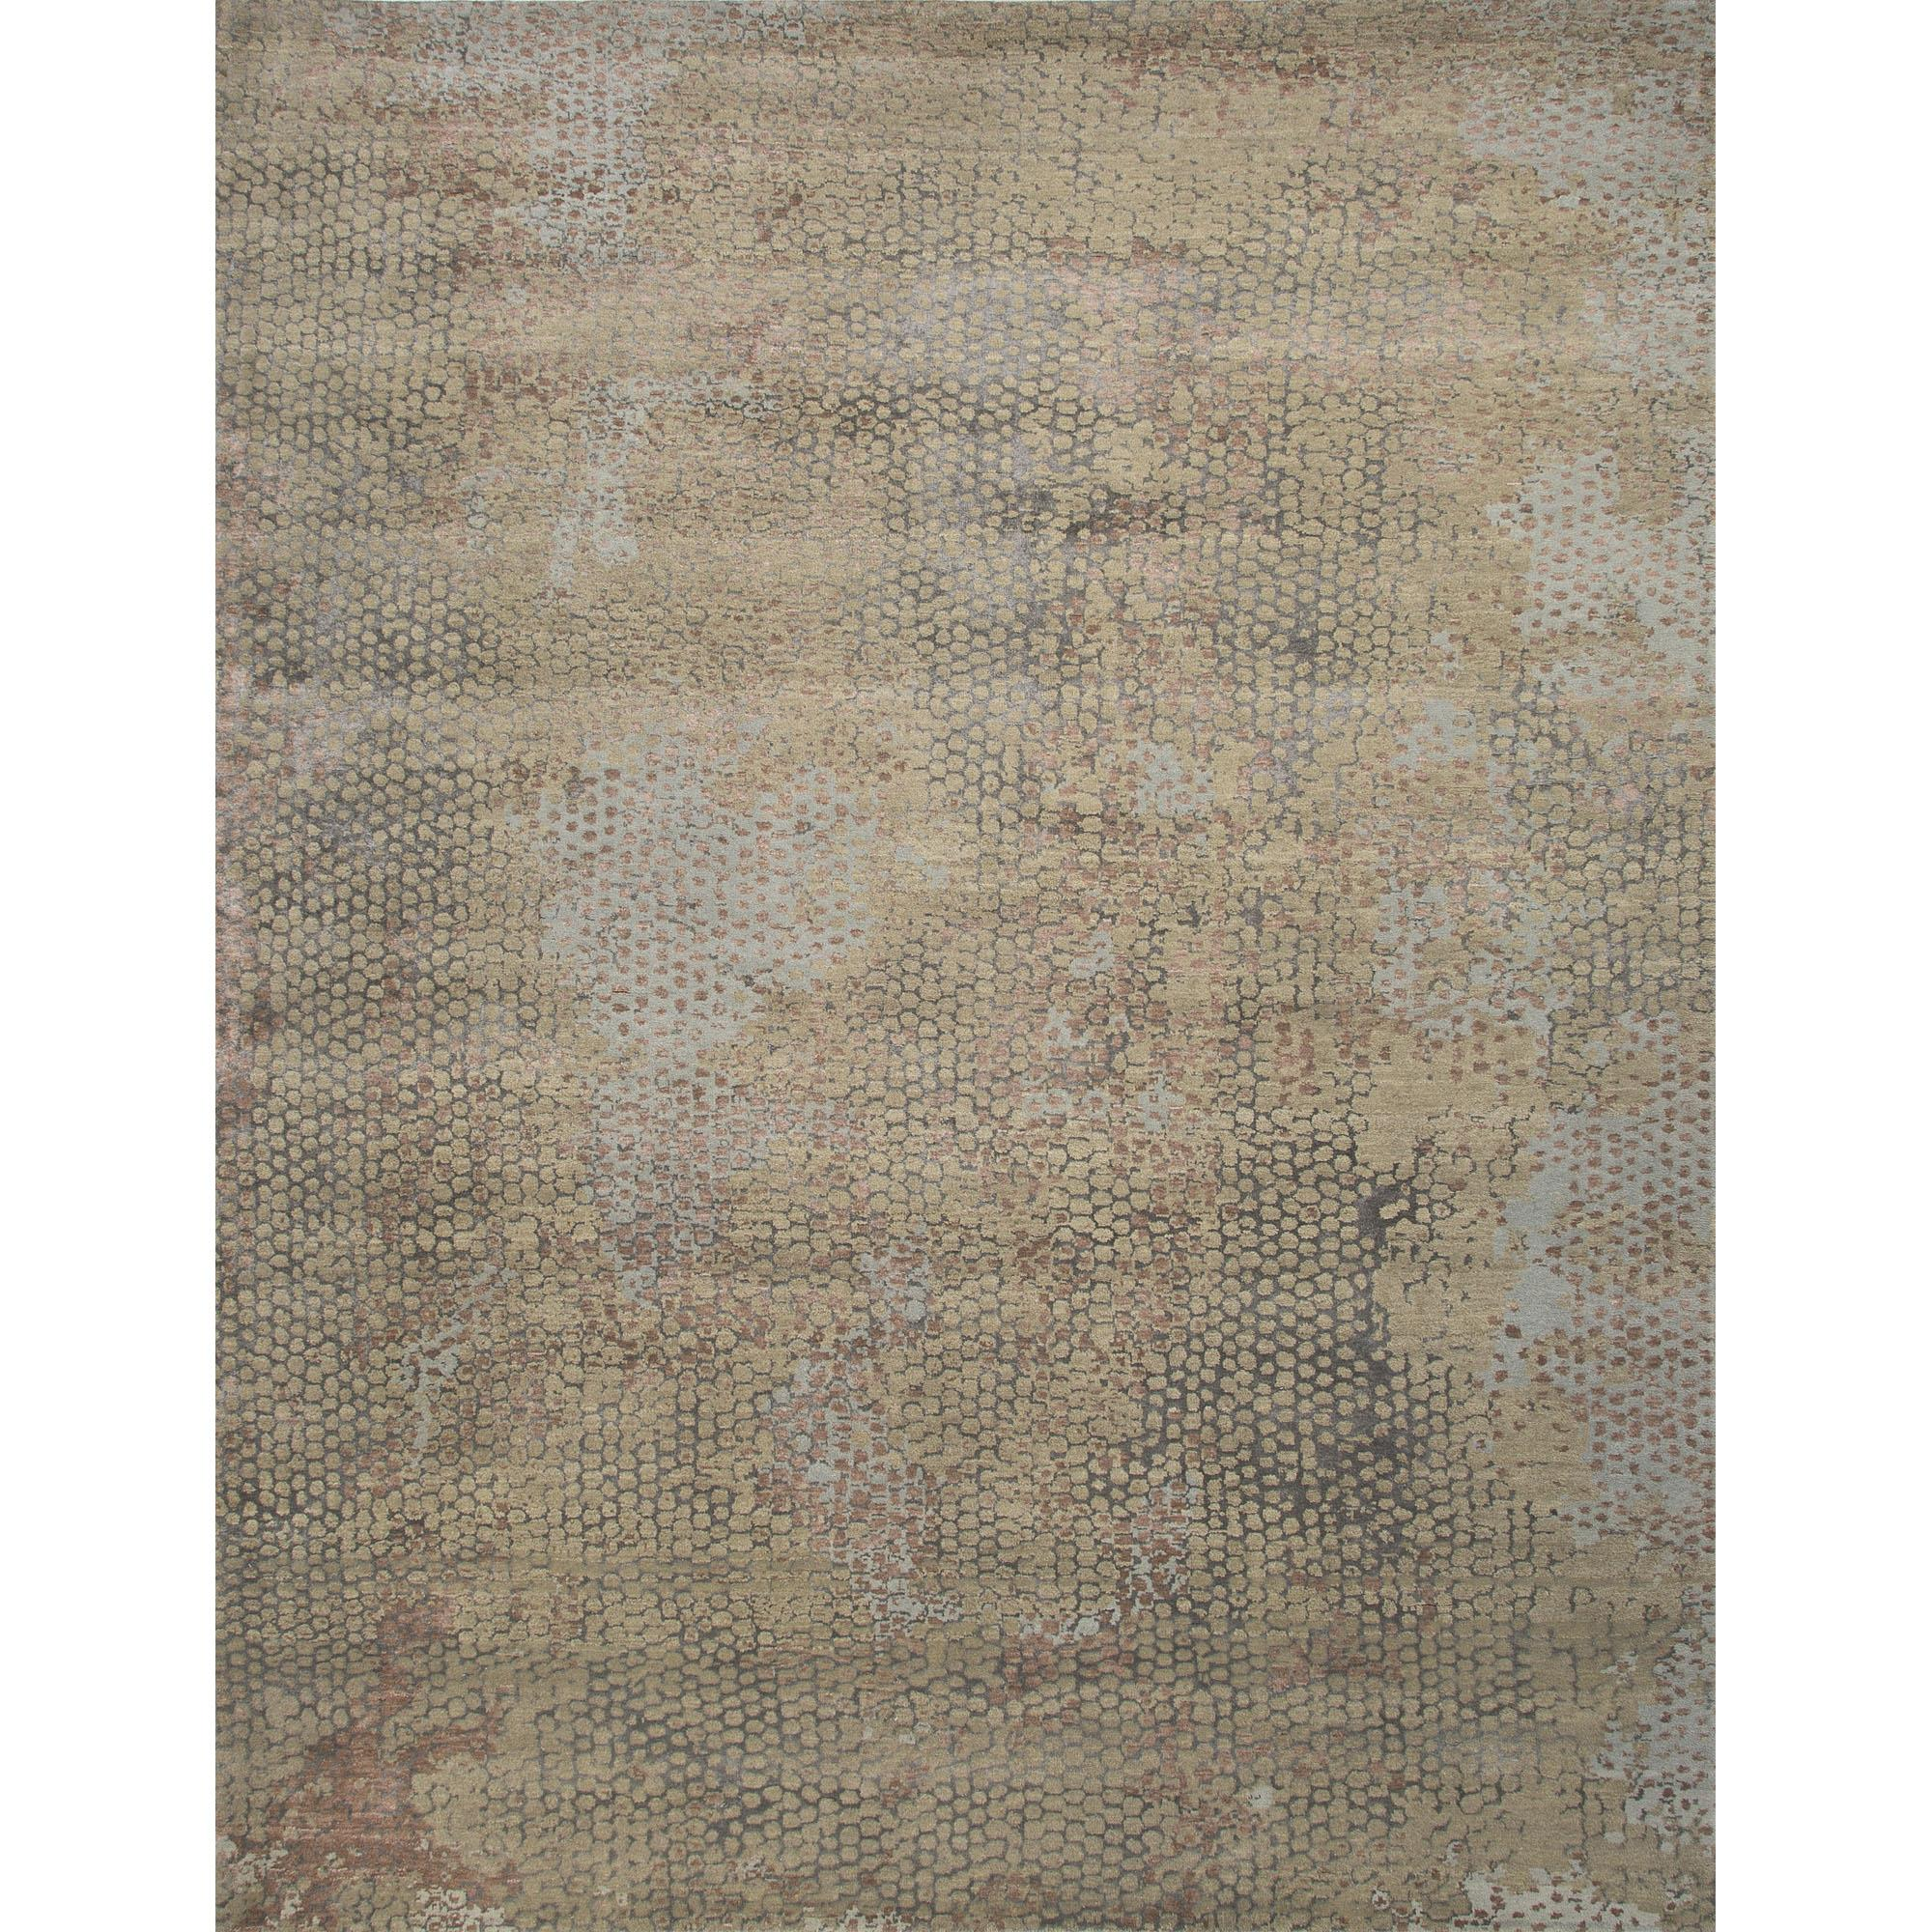 JAIPUR Rugs Chaos Theory By Kavi 9 x 12 Rug - Item Number: RUG117021